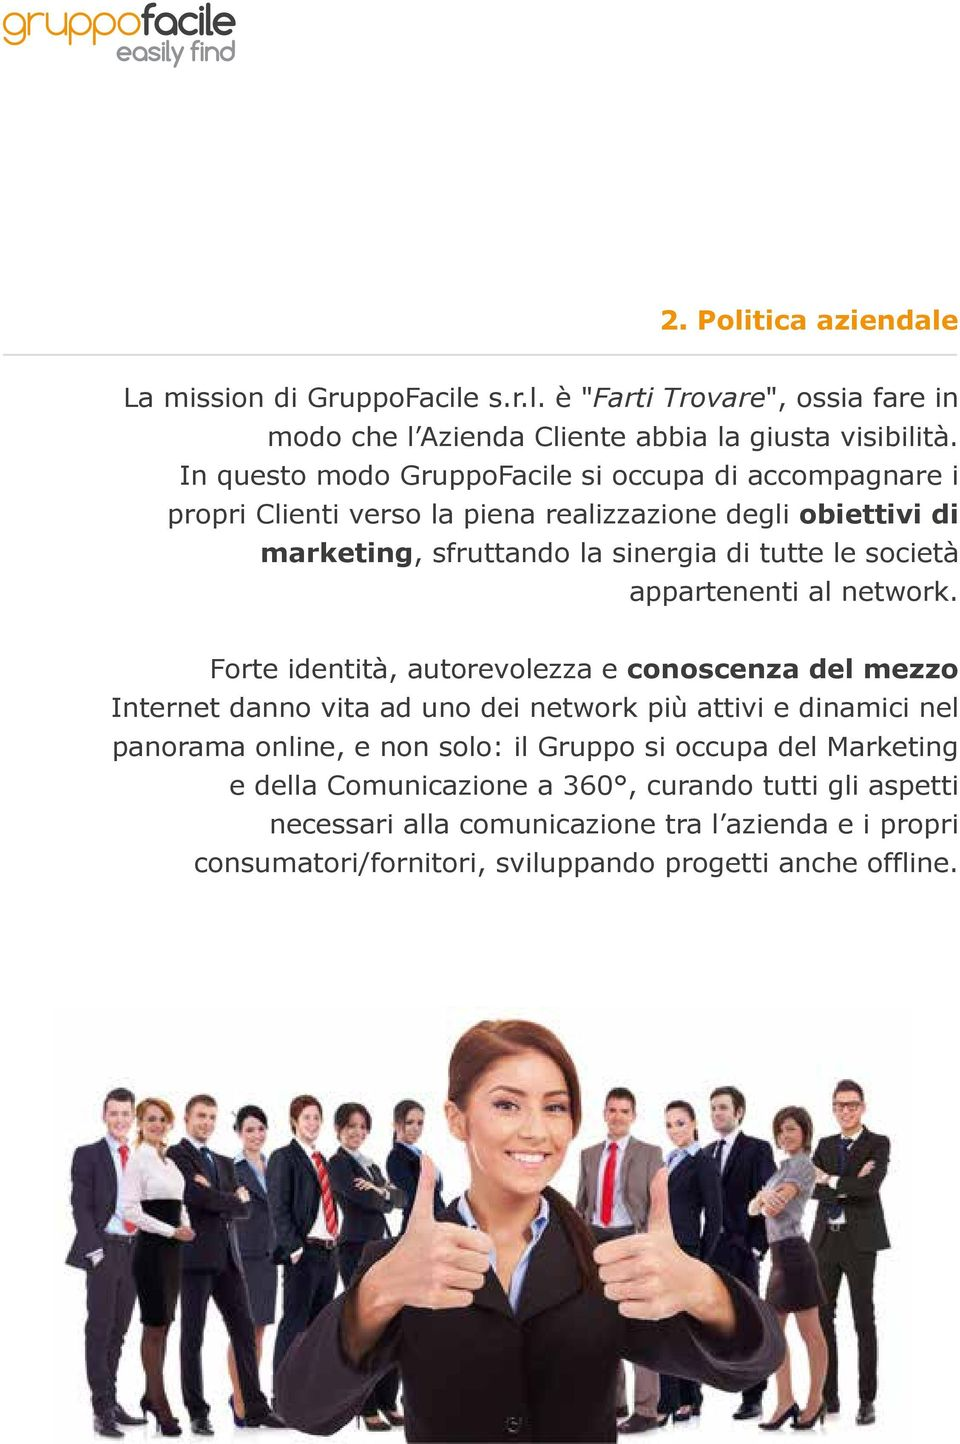 appartenenti al network.